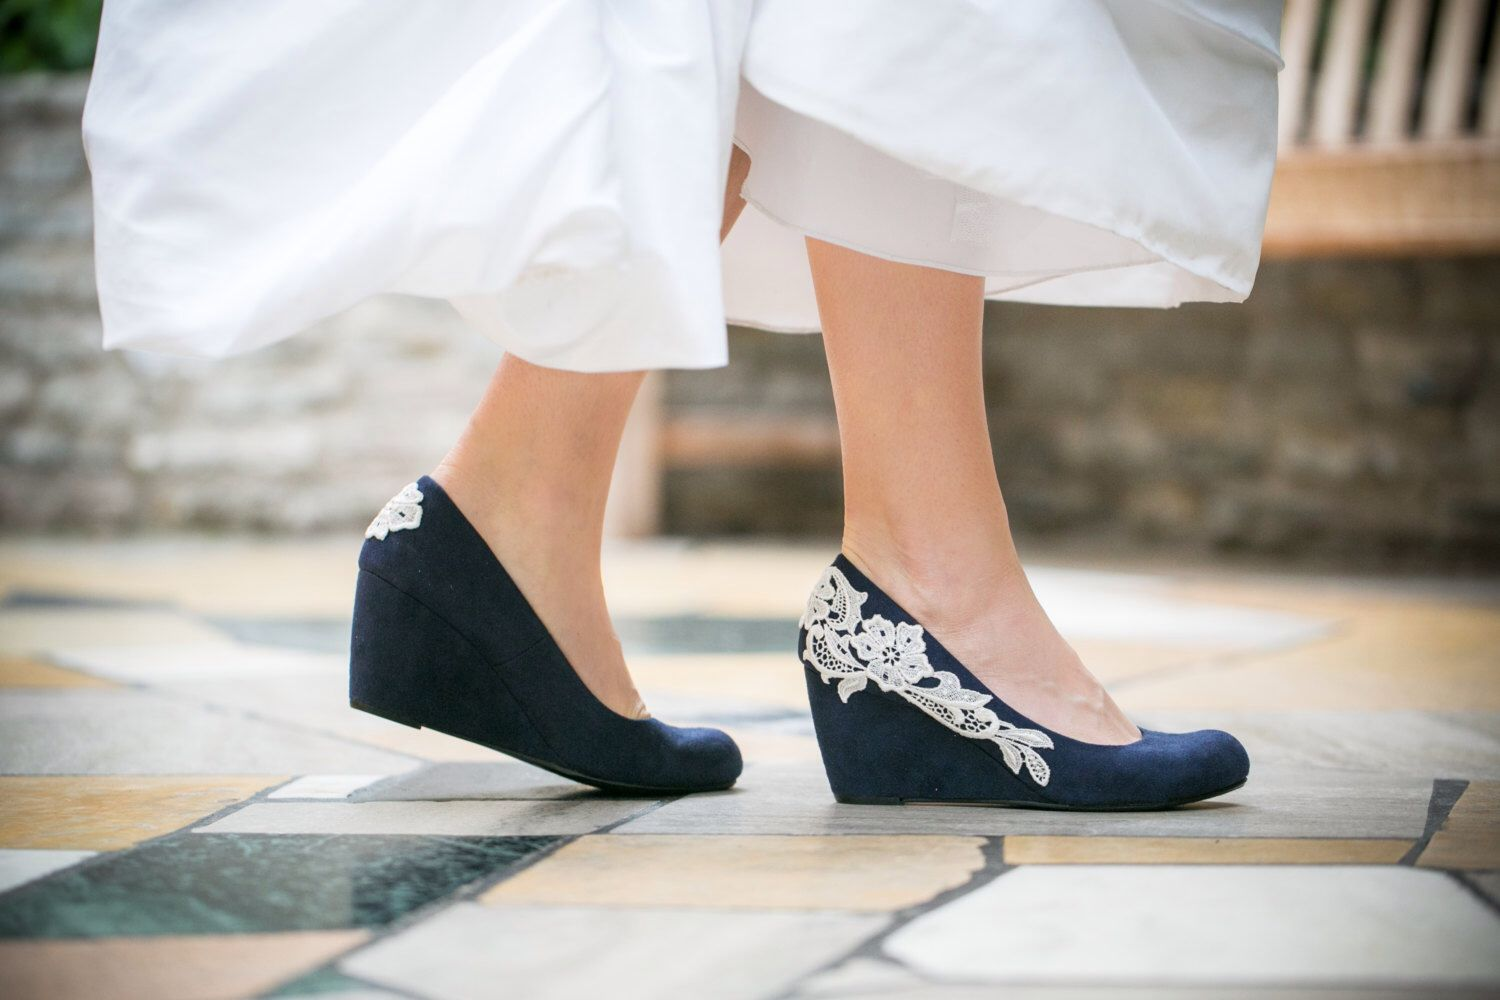 Lace Wedding Shoes But Everything I Ve Found Is So Expensive Any Tips On High Quality That Won T Cost A Ton